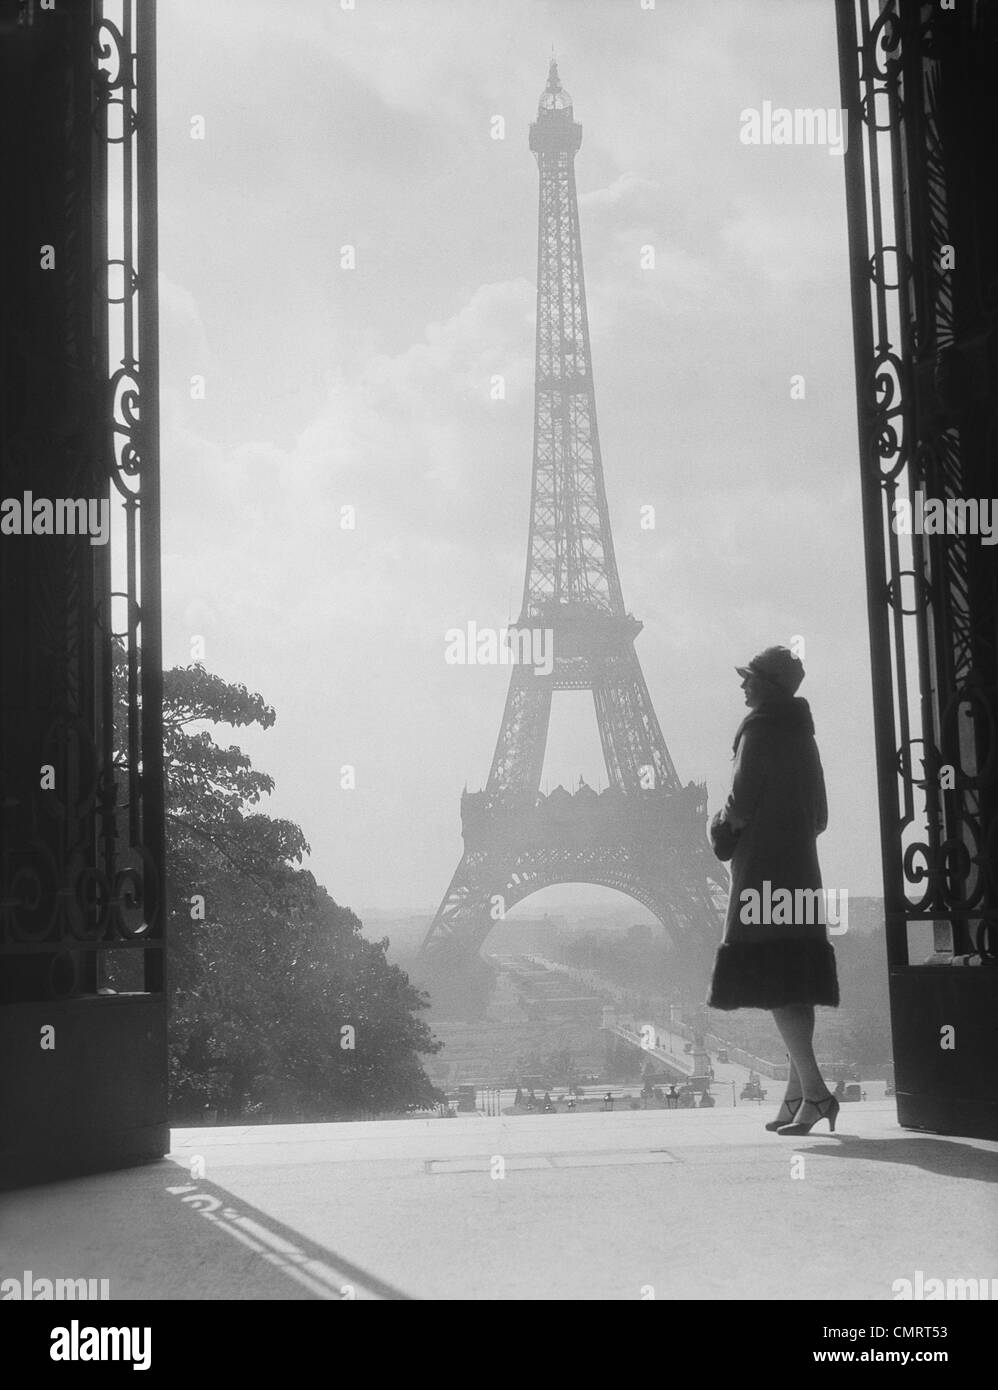 1920s 1930s MOODY SILHOUETTED WOMAN PARIS STANDING IN TROCADERO LOOKING TOWARD EIFFEL TOWER - Stock Image